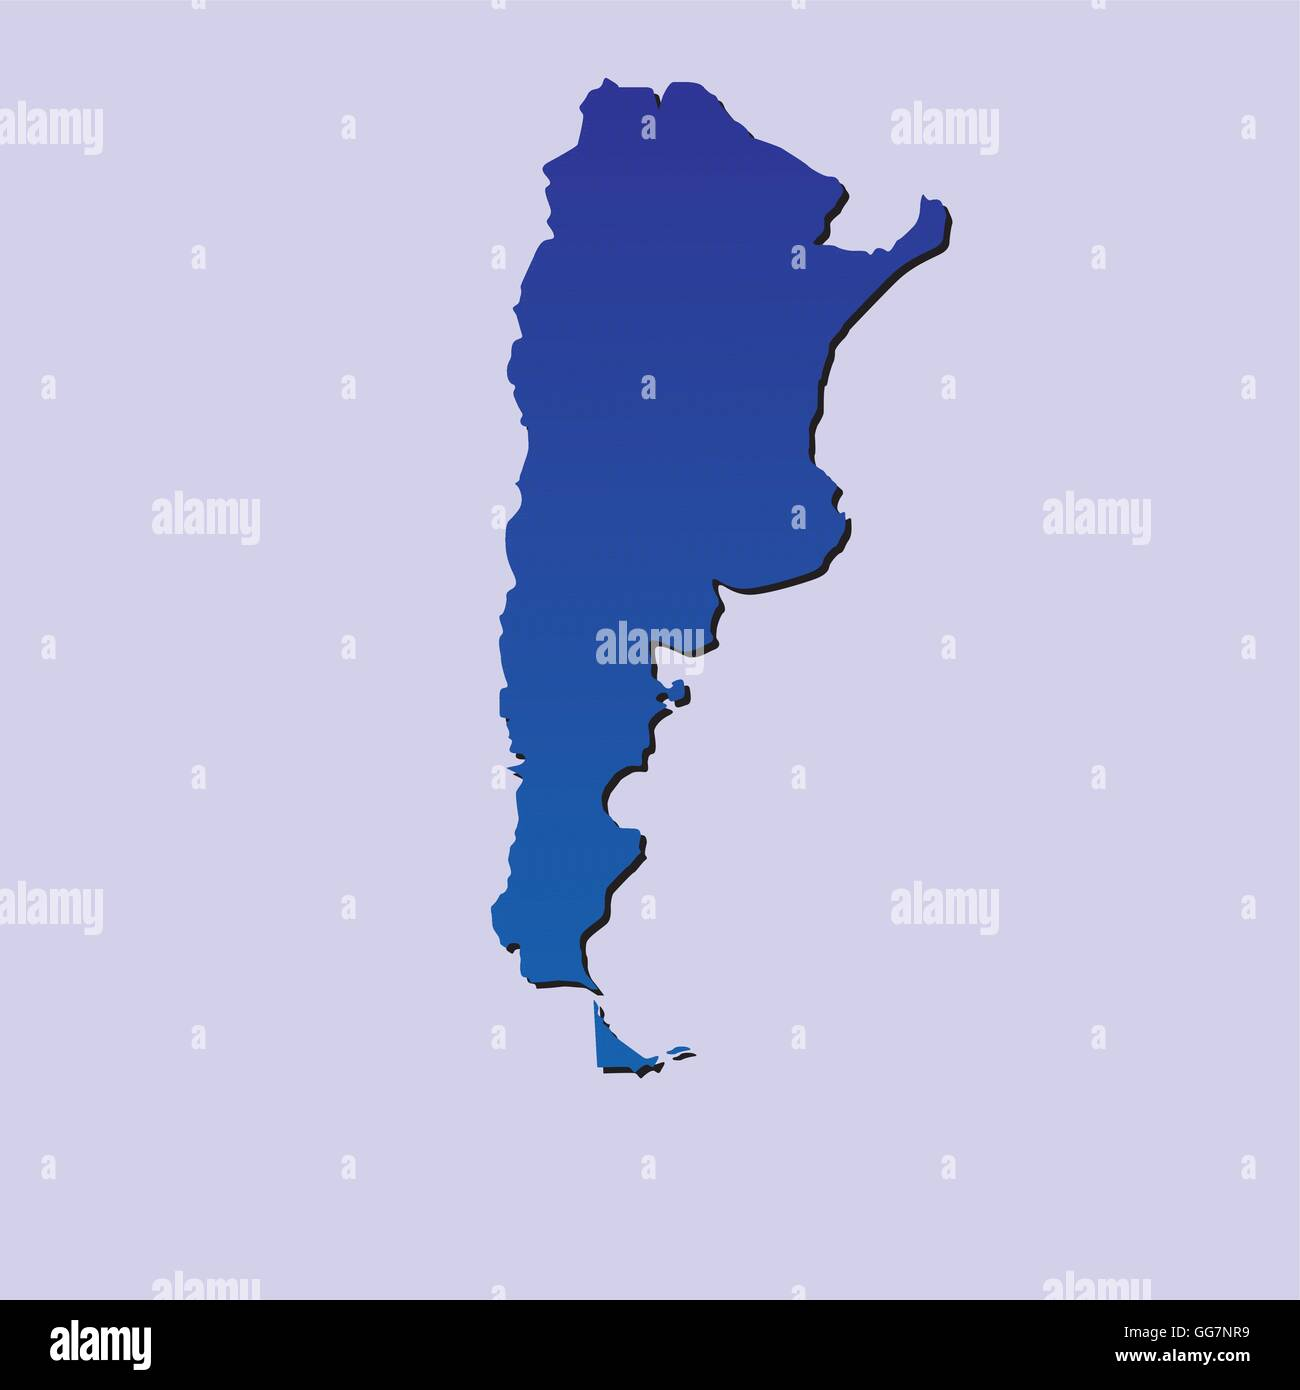 an isolated blue map of argentina on a light blue background Stock Vector